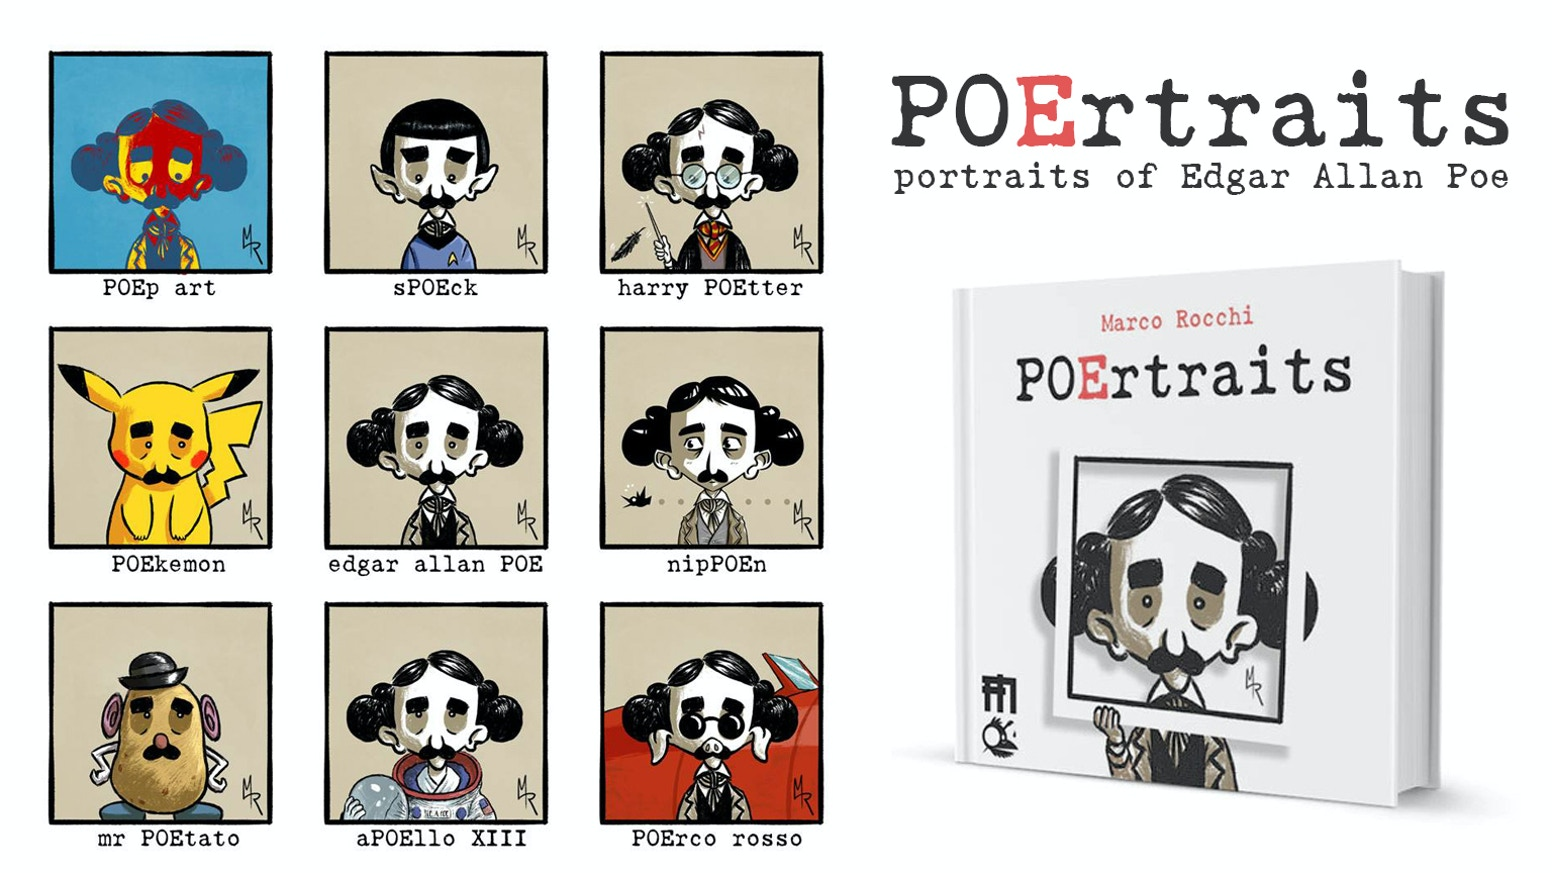 POErtraits, funny and original illustrations that blend Edgar Allan Poe with puns and pop culture. From Italy with crows!